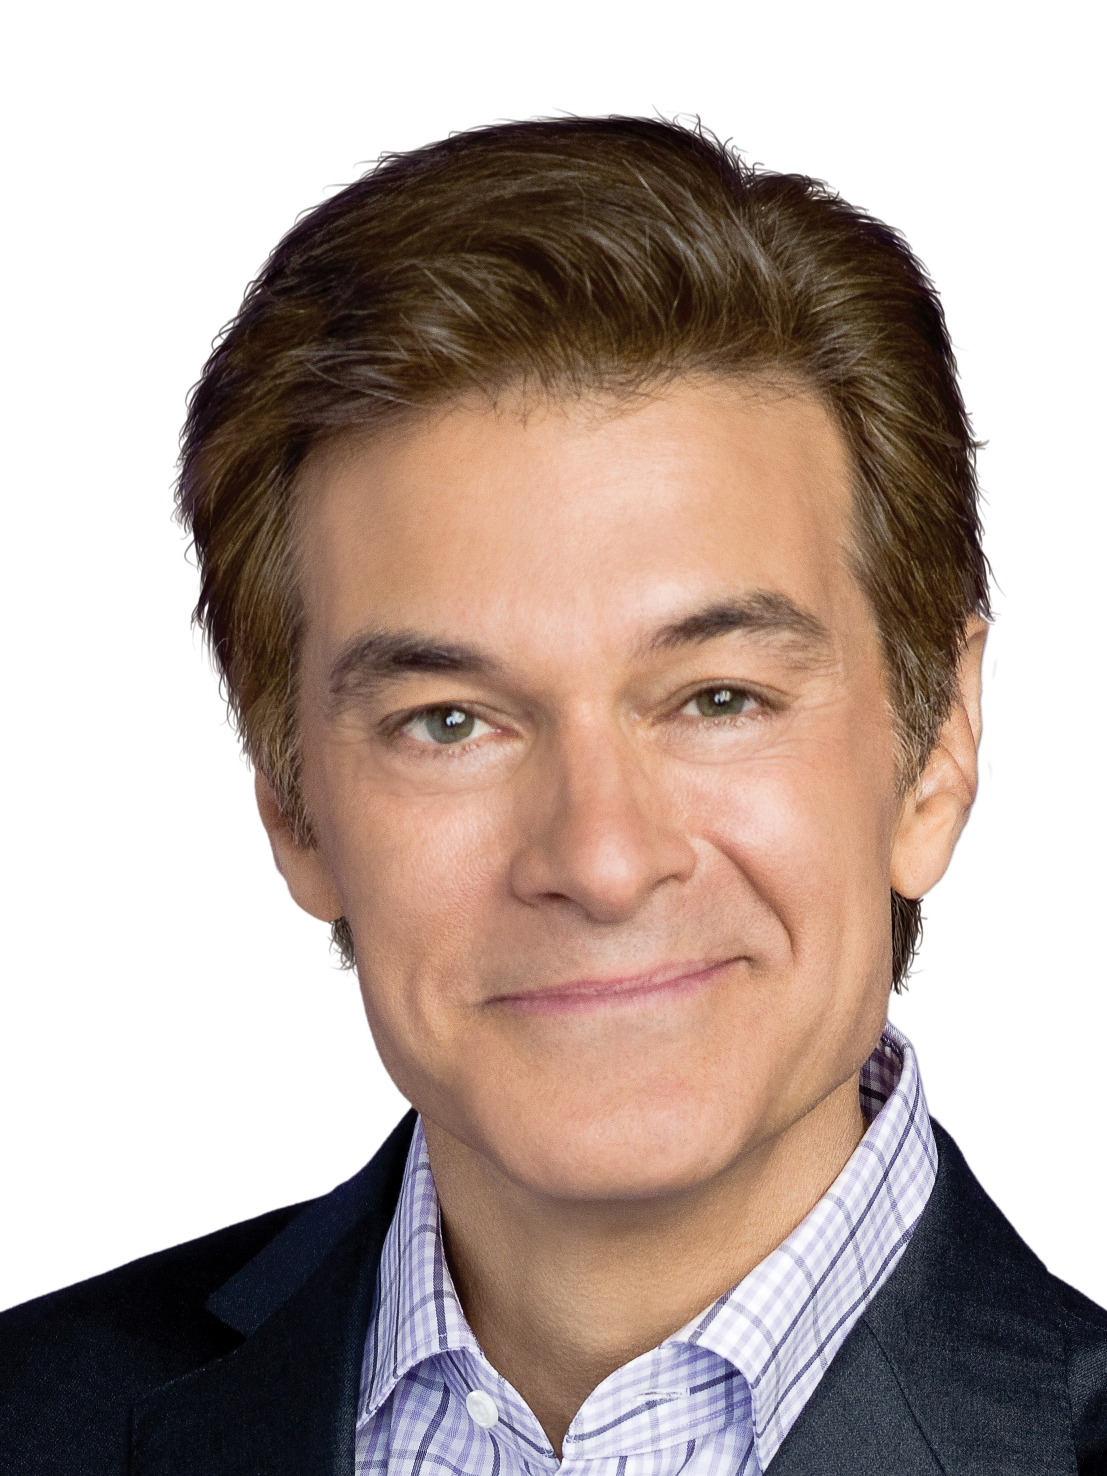 Dr. Oz Reveals Why He Loves His Job and How You Can, Too